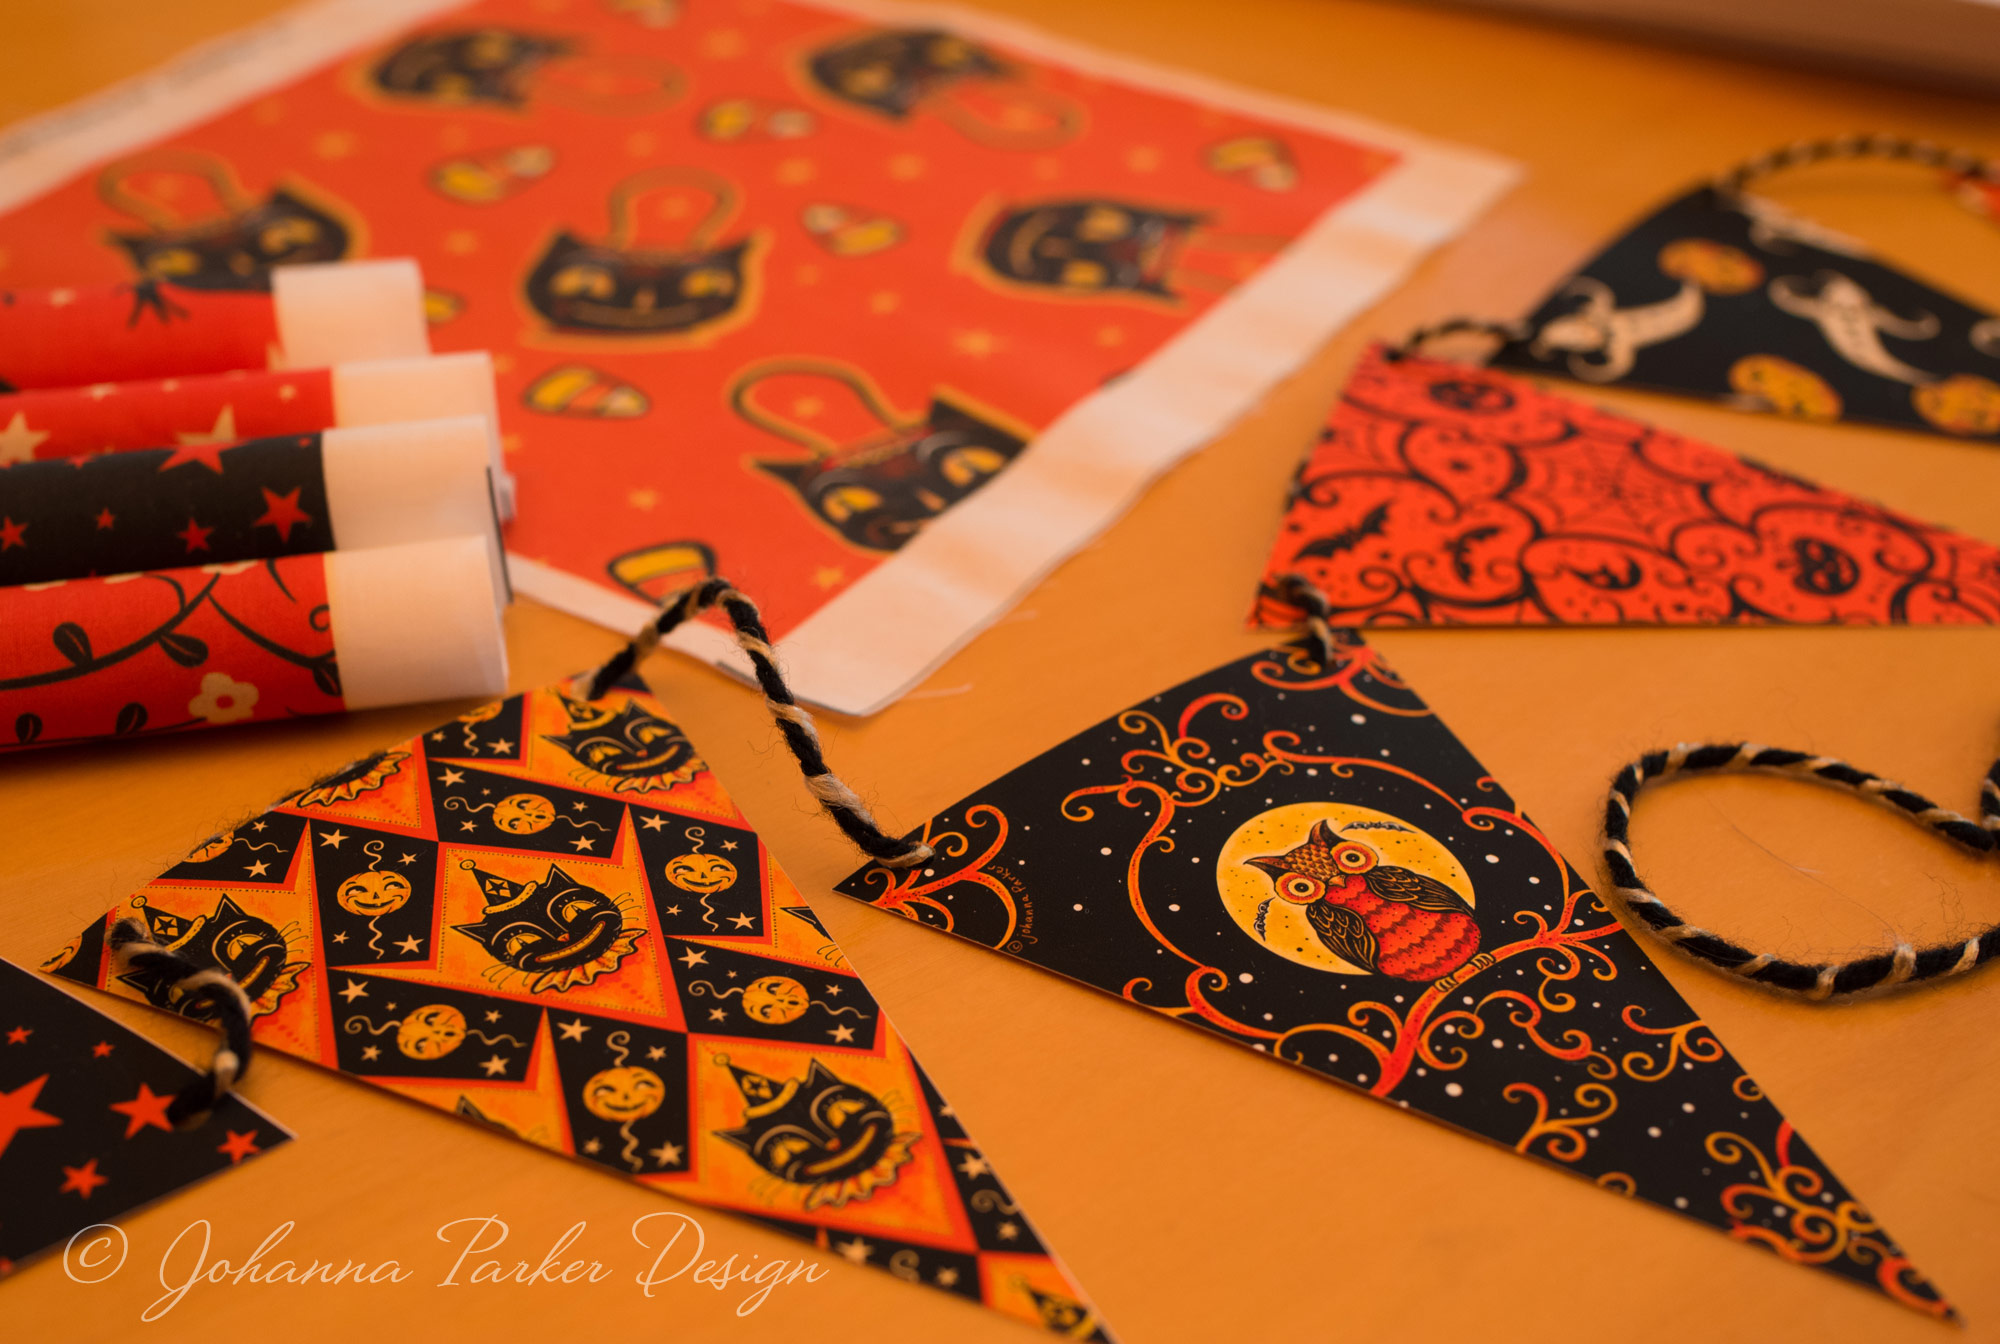 This photo shows a glimpse at one of my   Printable Halloween Pennant Garlands.   The same pattern work is featured on various designs in my   Spoonflower Shop   too.